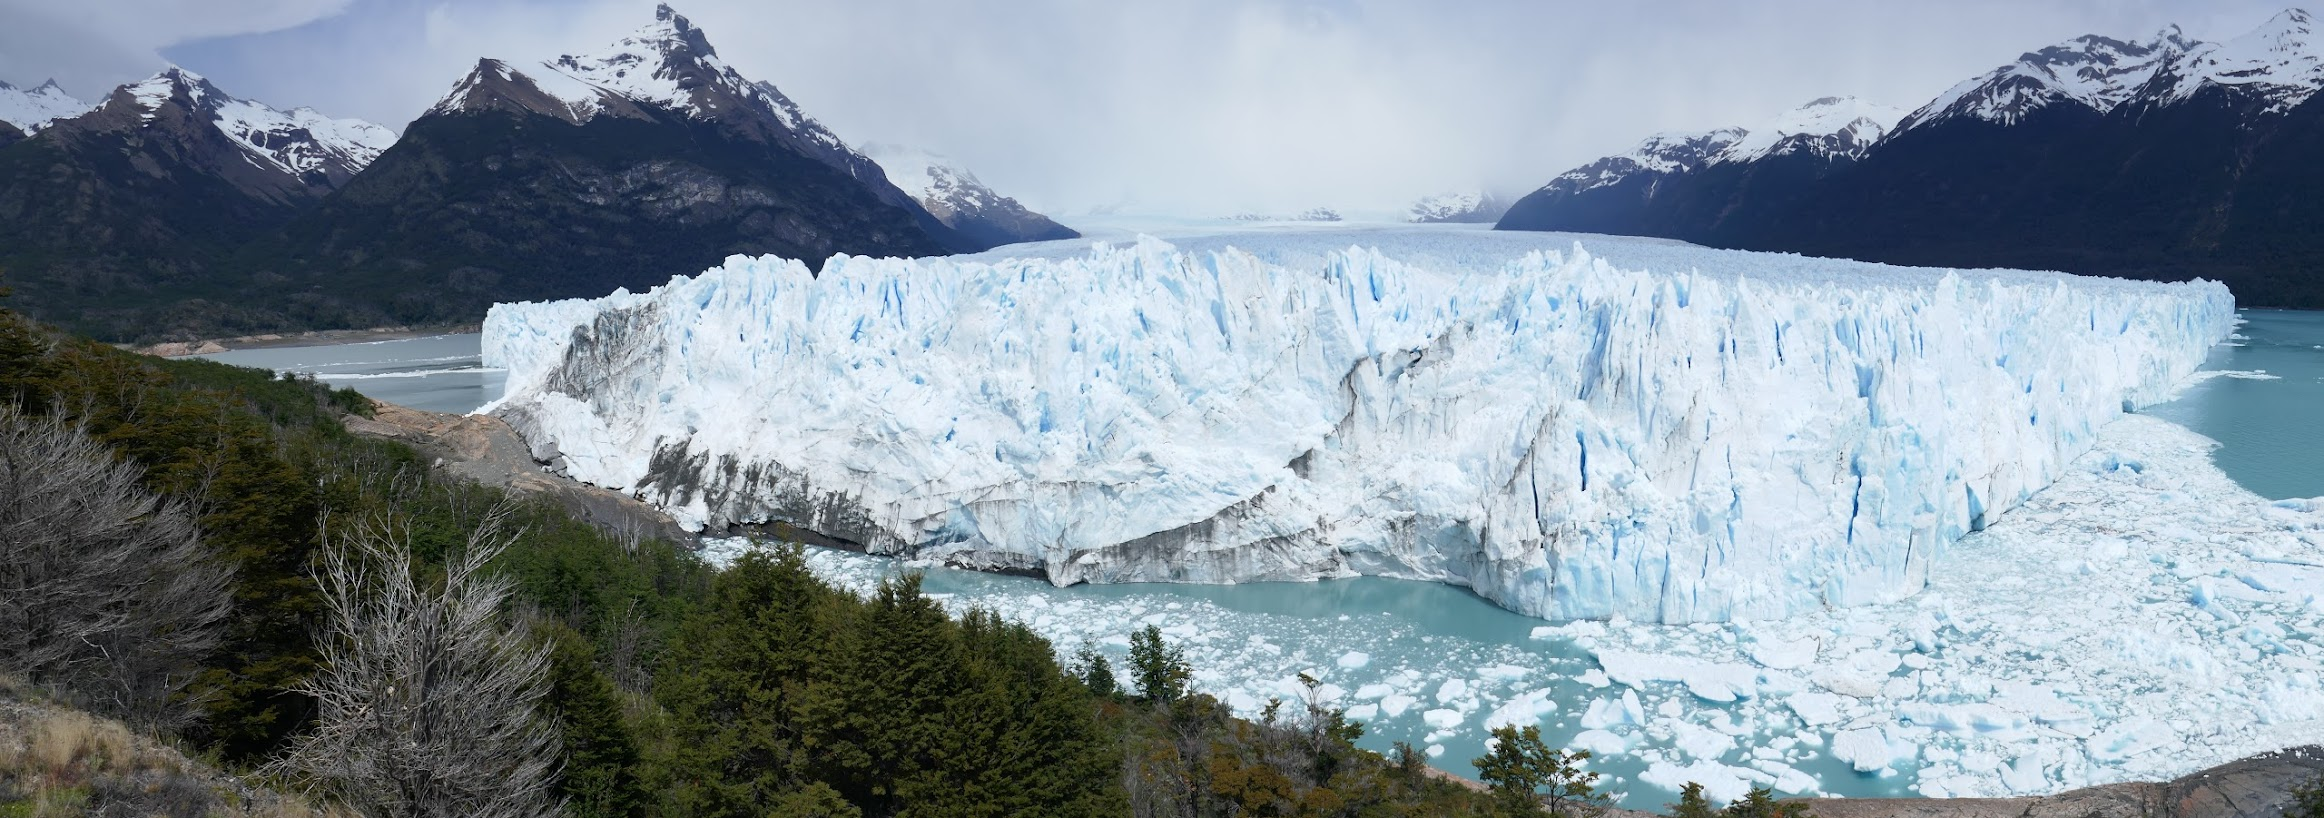 Panoramic view of the glacier